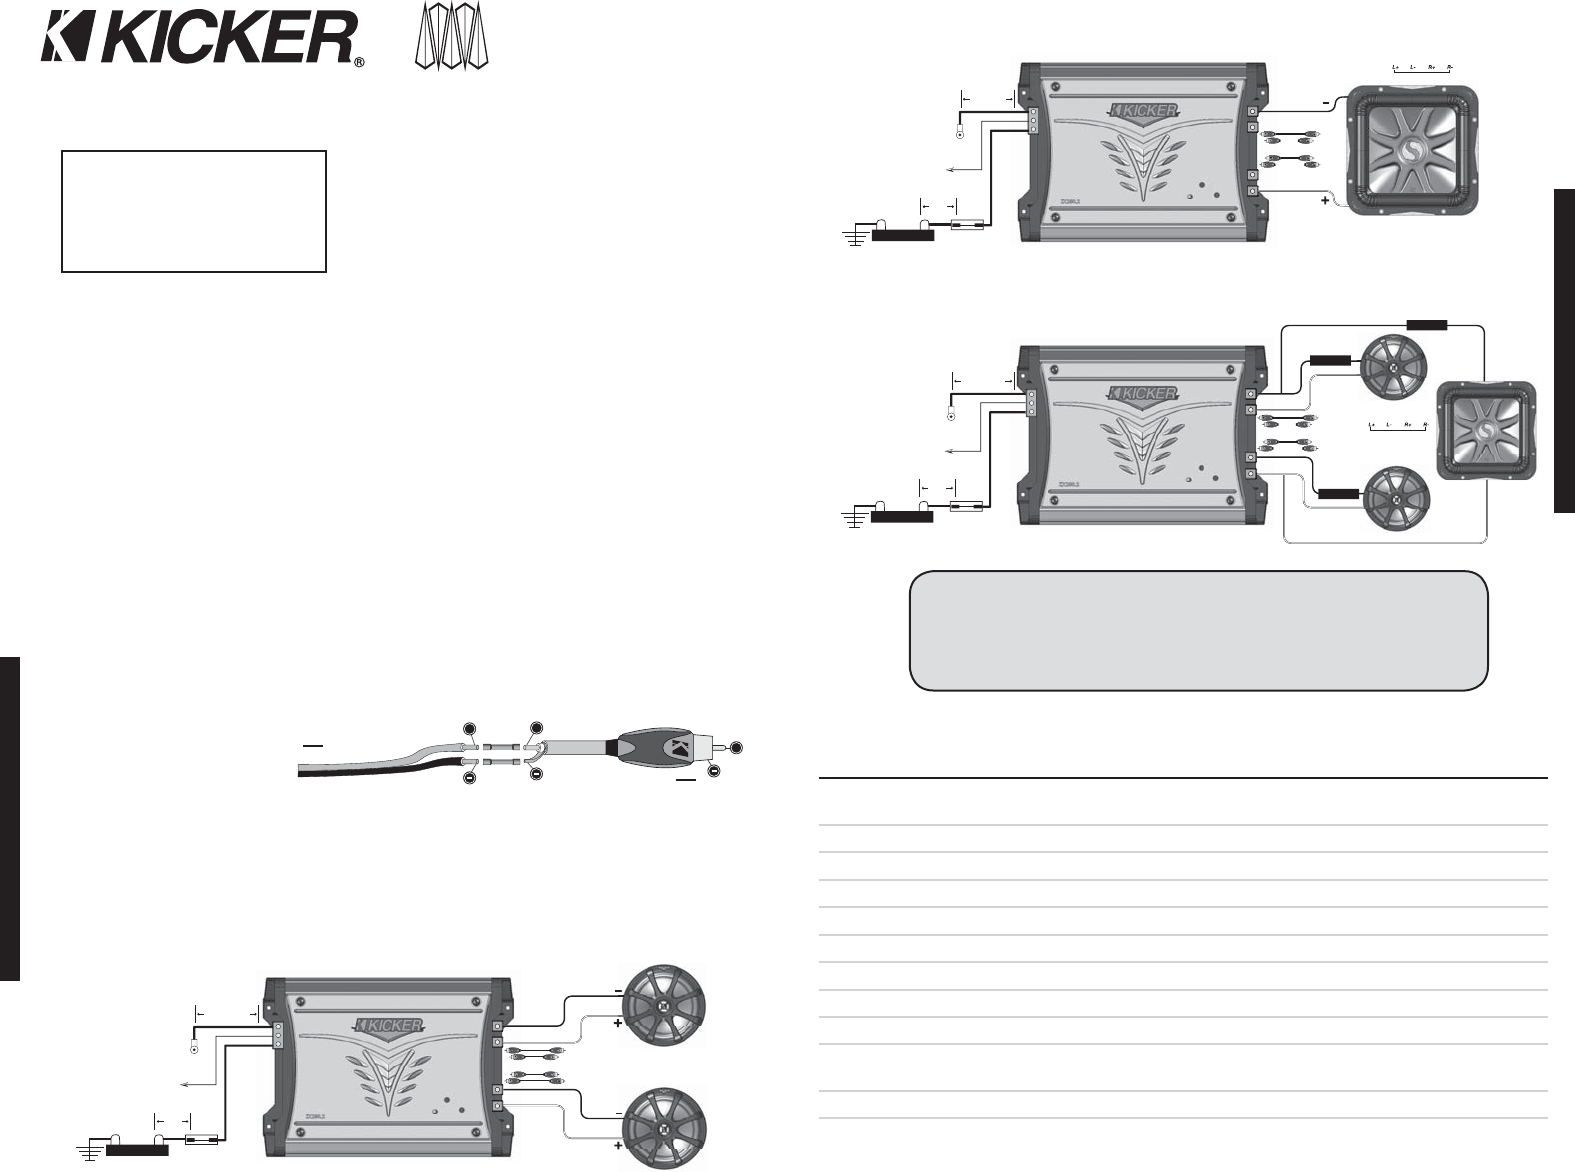 hight resolution of kicker zx350 2 stereo amplifier user manual